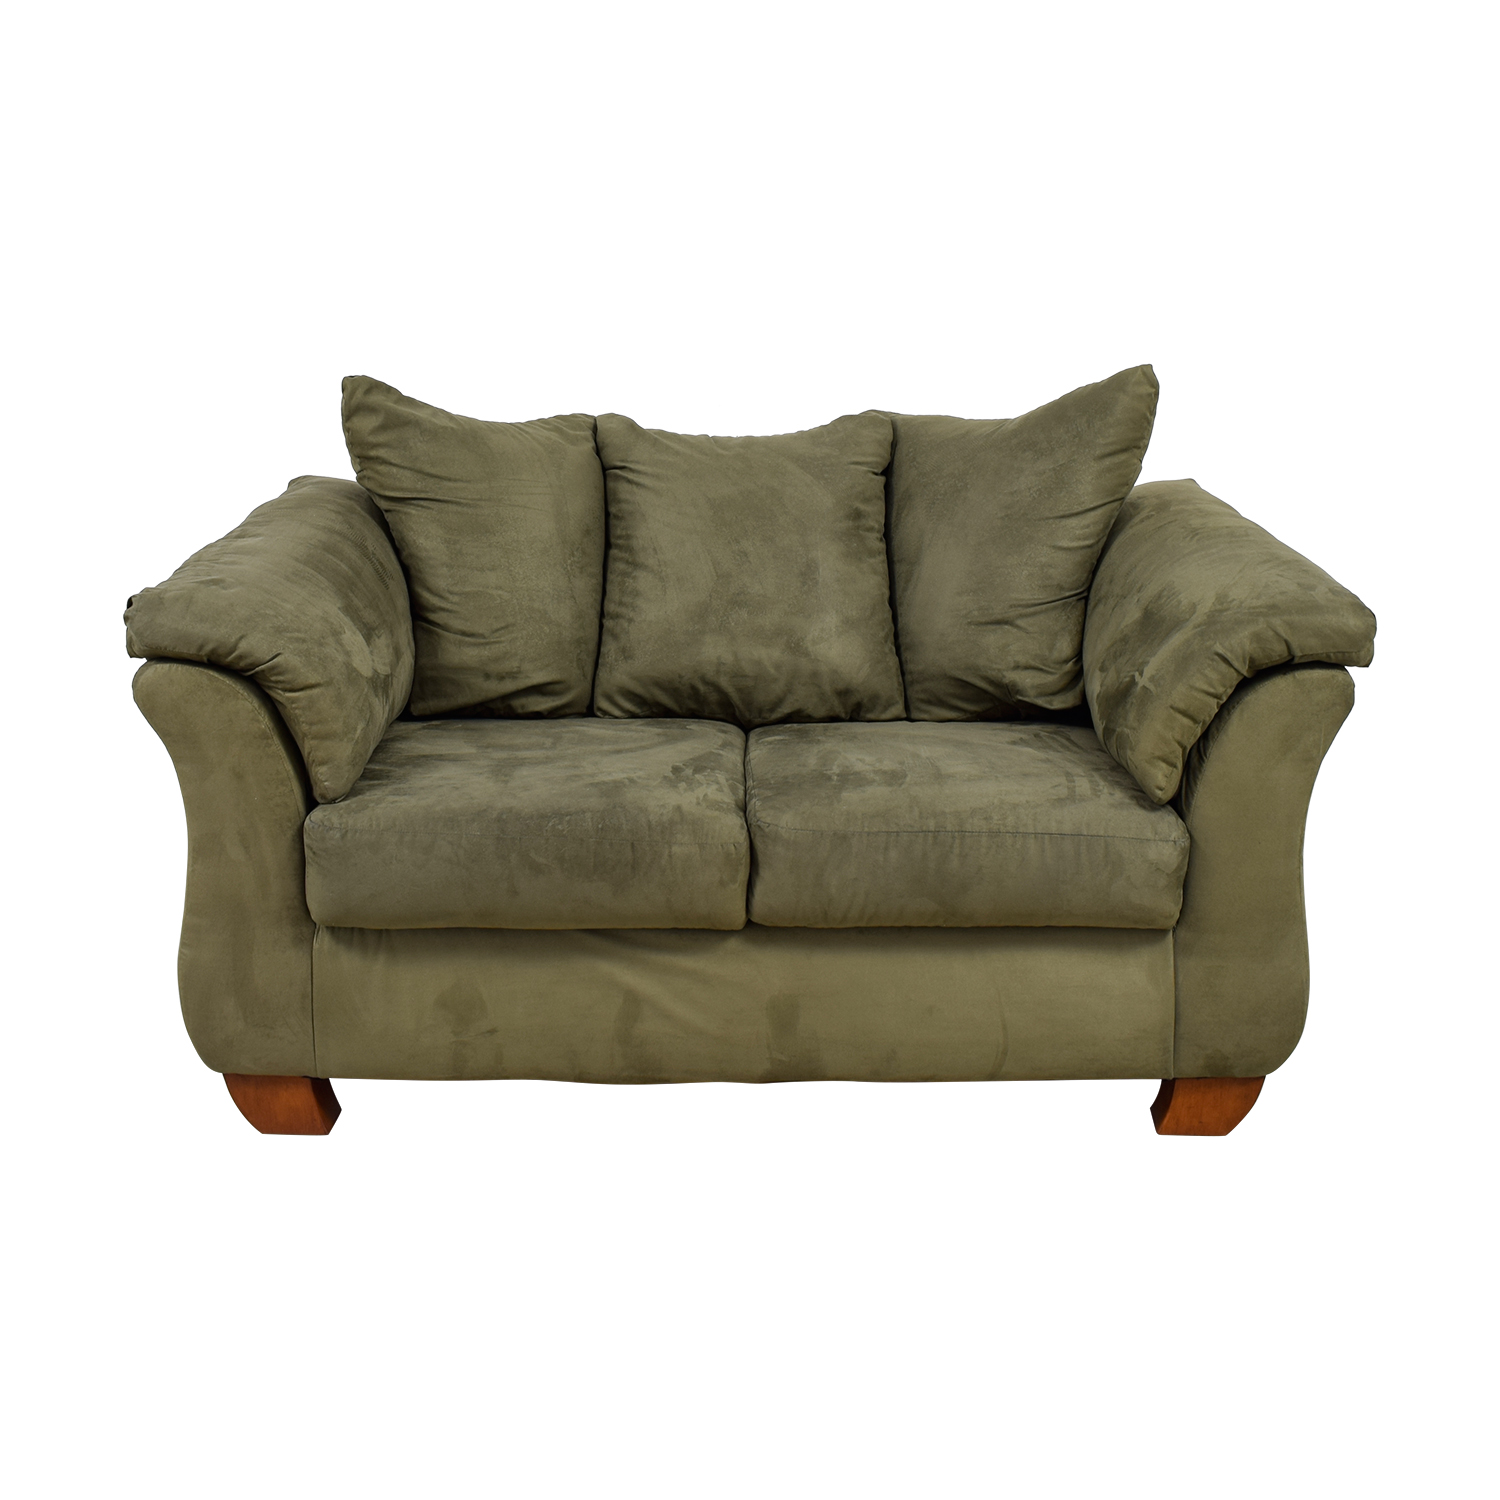 shop Straight From the Crate Green Loveseat Straight From the Crate Sofas